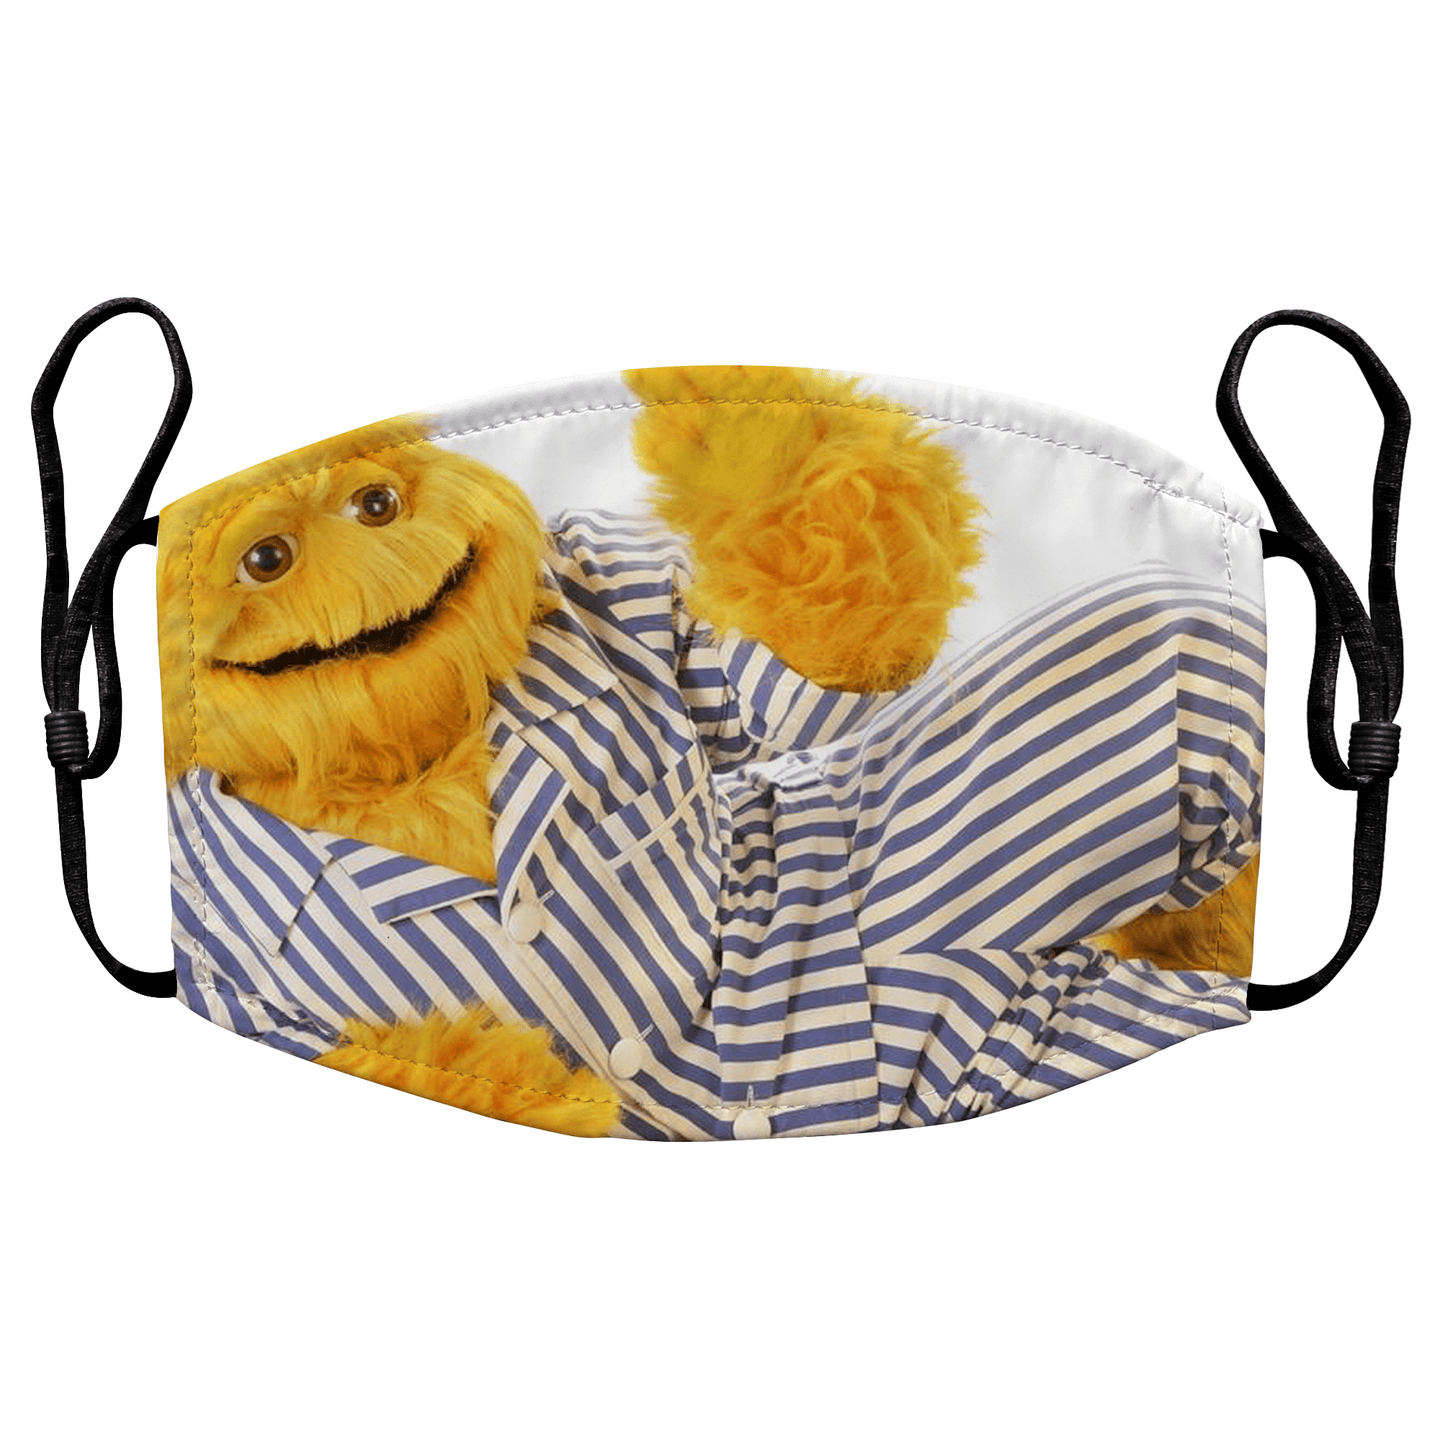 Honey Monster Sugar Puffs Reusable Premium Face Mask Cover with Filters